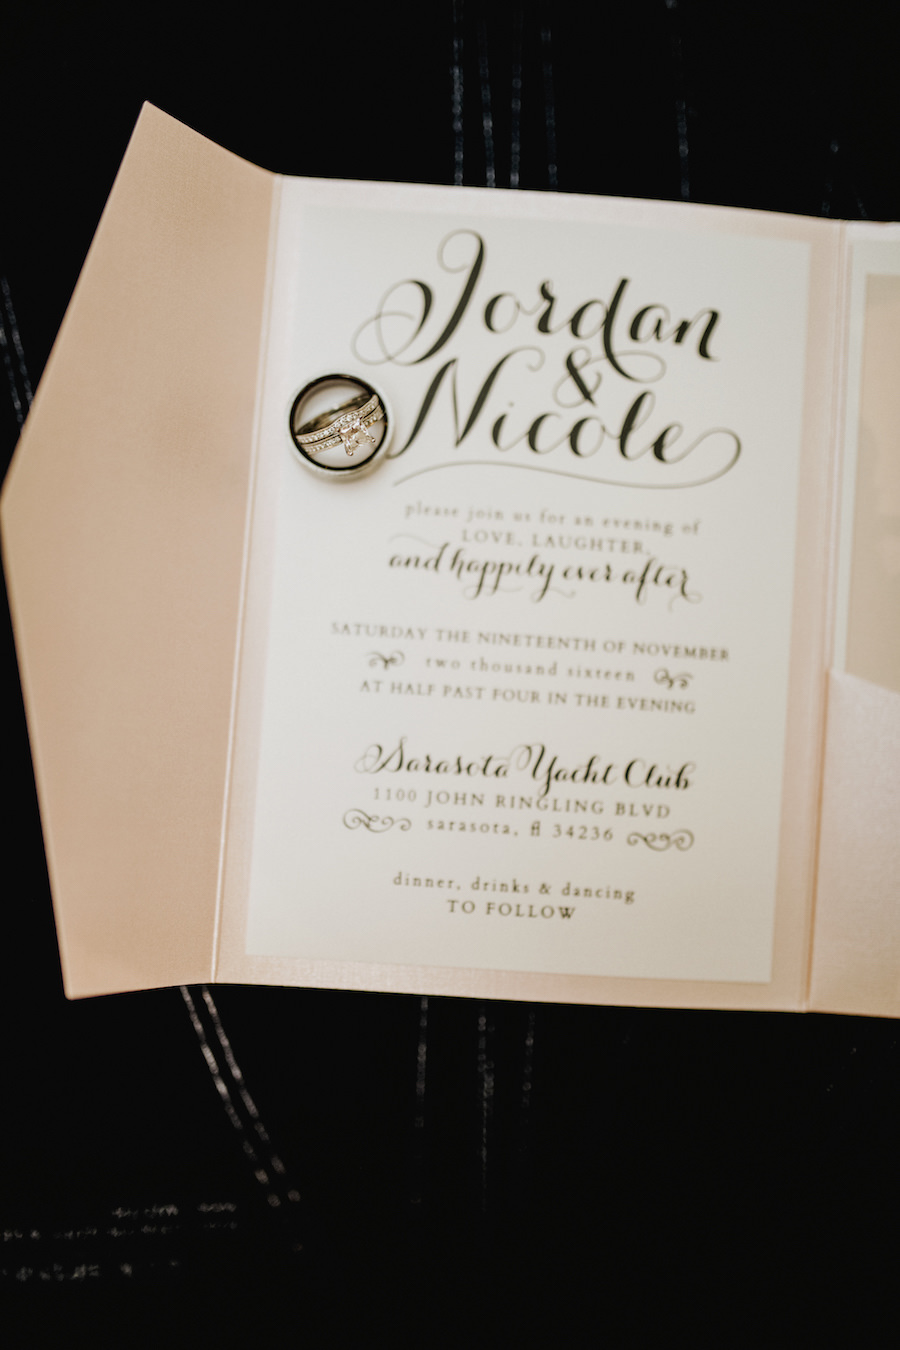 Blush and White Wedding Invitation with Black Calligraphy and Diamond Engagement Ring and Wedding Bands   Tampa Bay Wedding Planner NK Productions